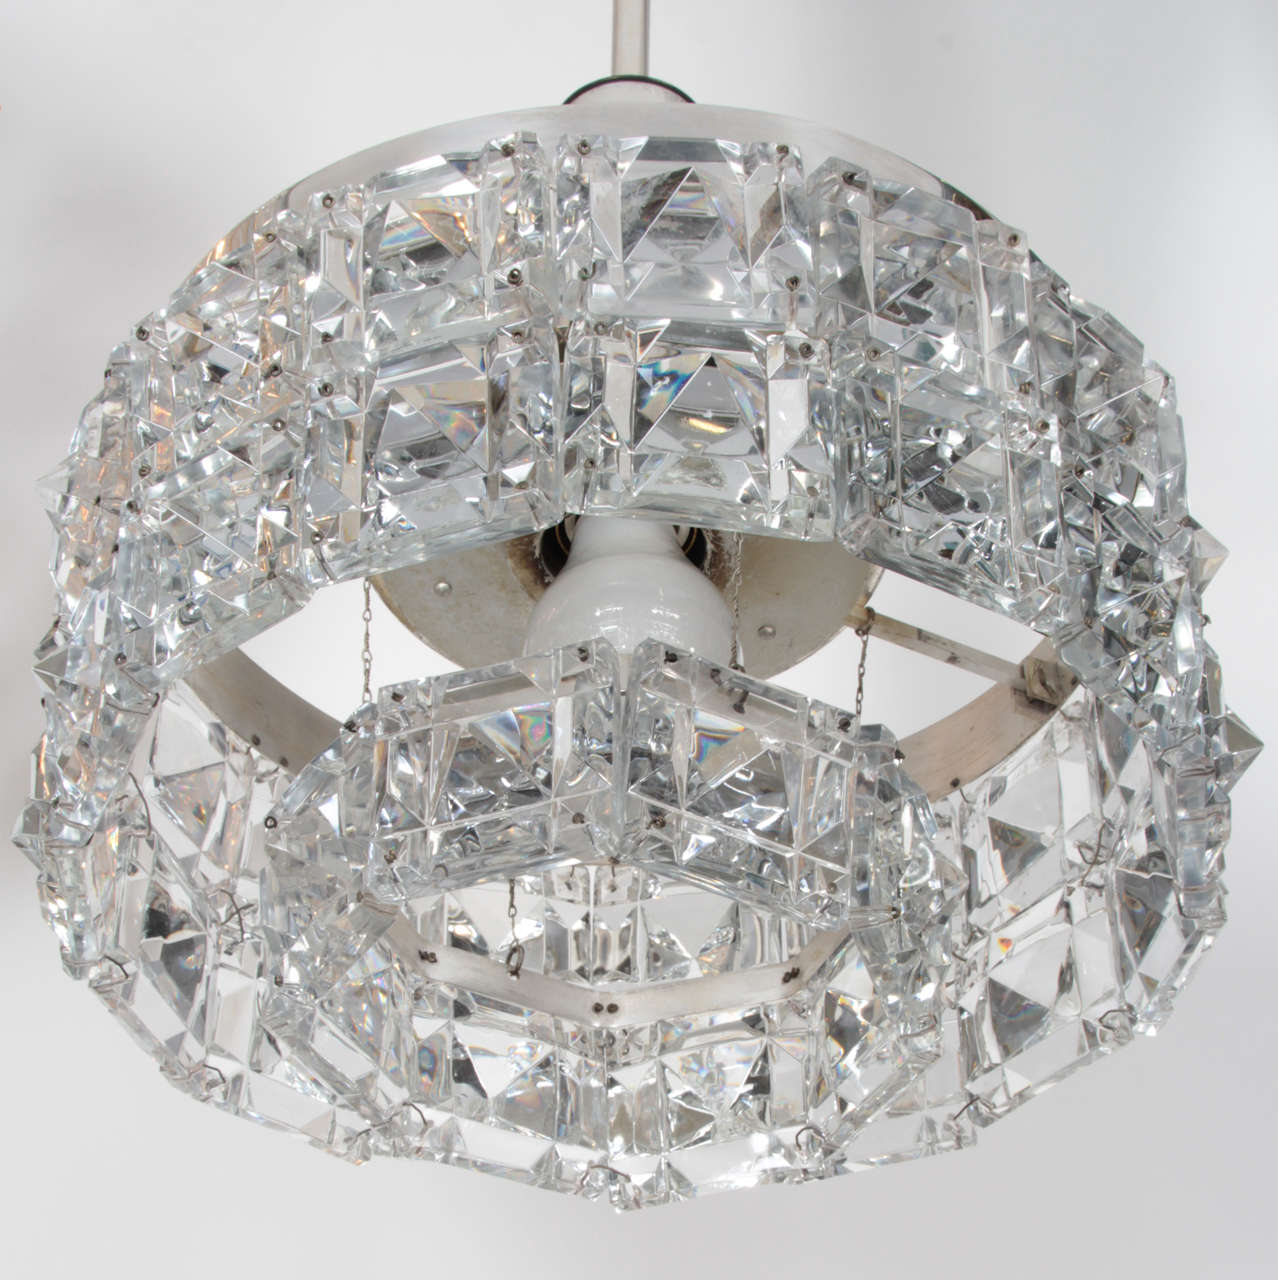 Kinkeldey faceted crystal prism chandelier for sale at 1stdibs austrian art deco drum chandelier composed of three rows of deep faceted square crystal prisms on aloadofball Gallery